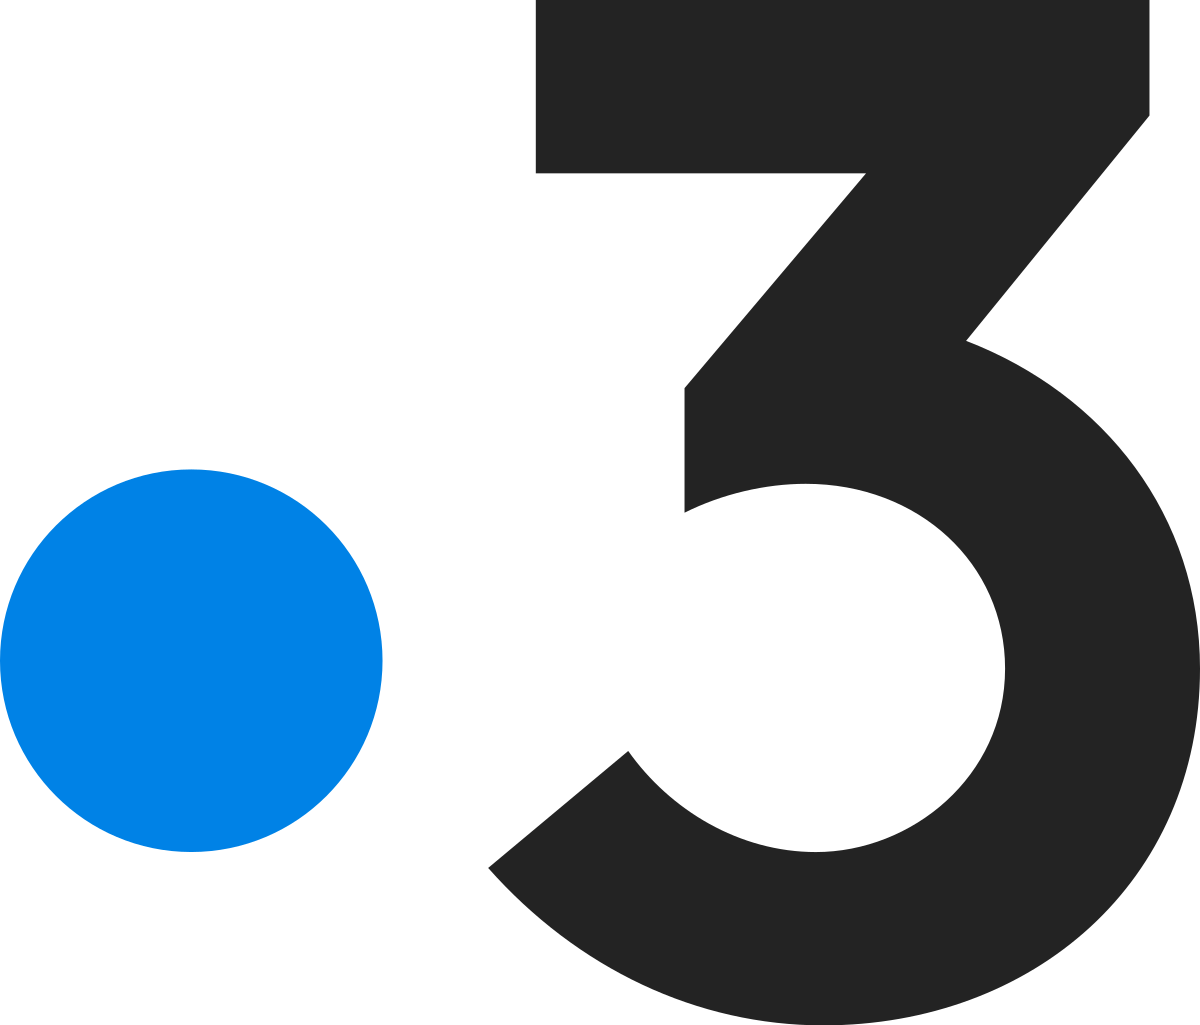 Wikipedia . France 4 logo clipart